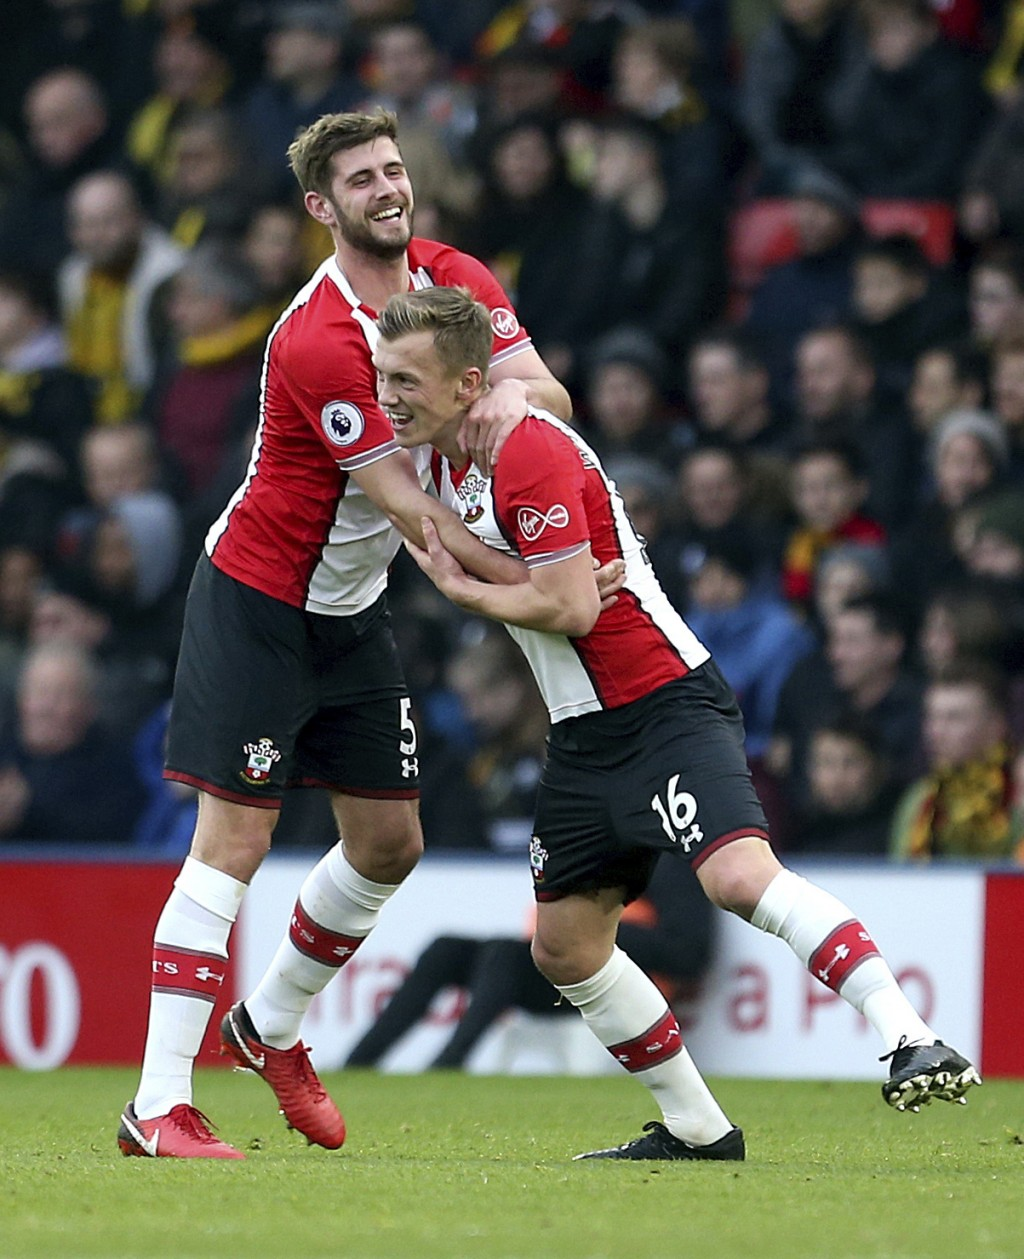 Southampton's James Ward-Prowse, right, celebrates scoring his side's first goal of the game with teammate Jack Stephens during the English Premier Le